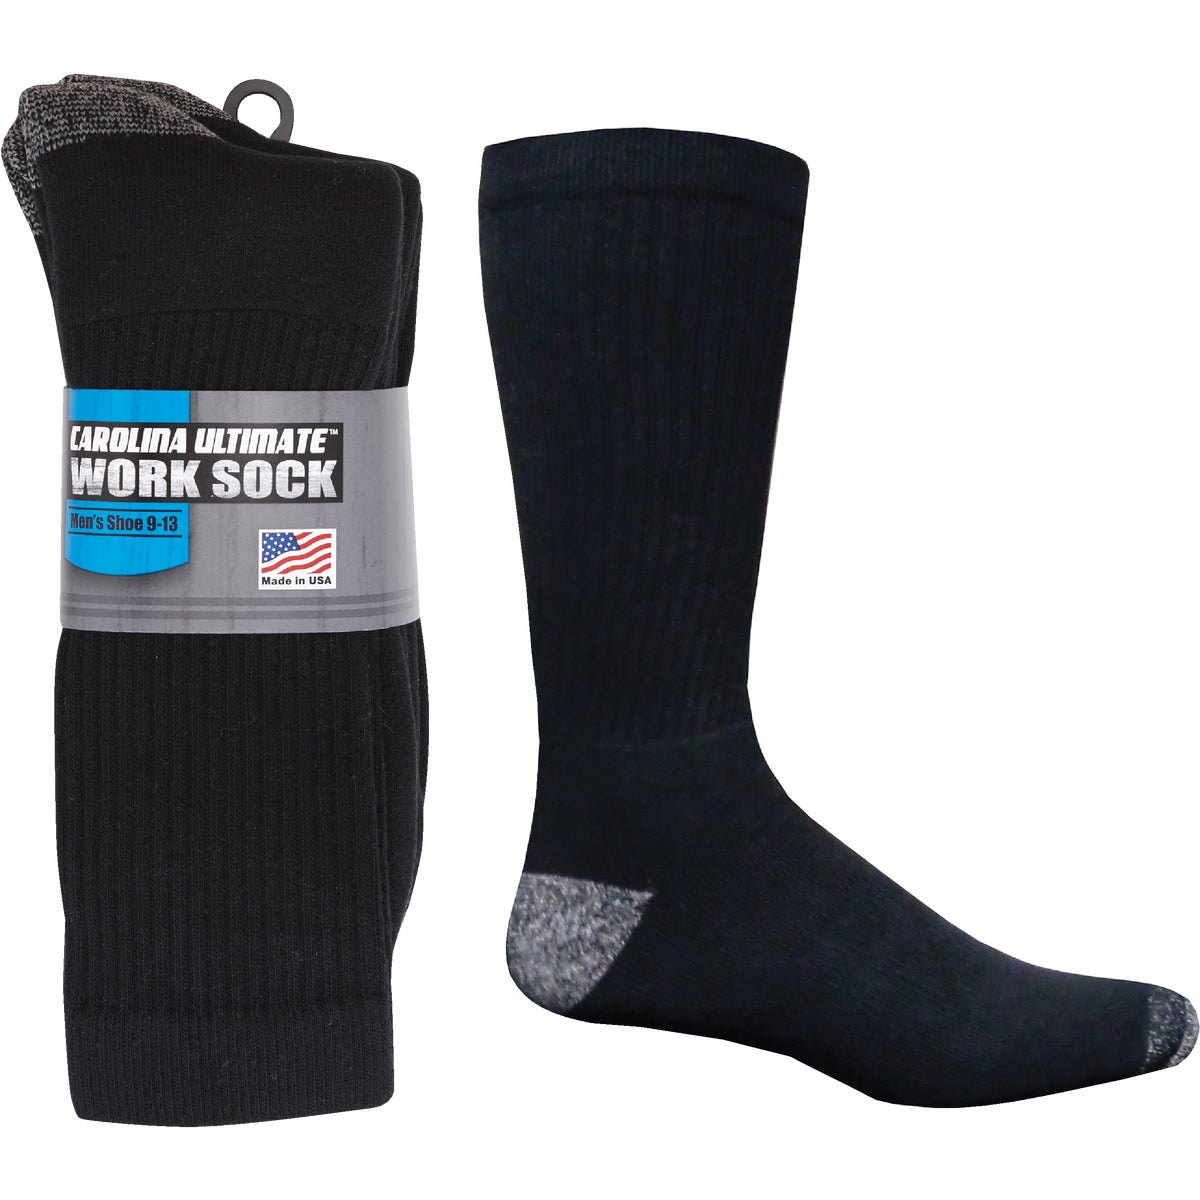 3PK BLK LG AT WORK SOCK - S1221-052L by Wigwam Mills, Inc